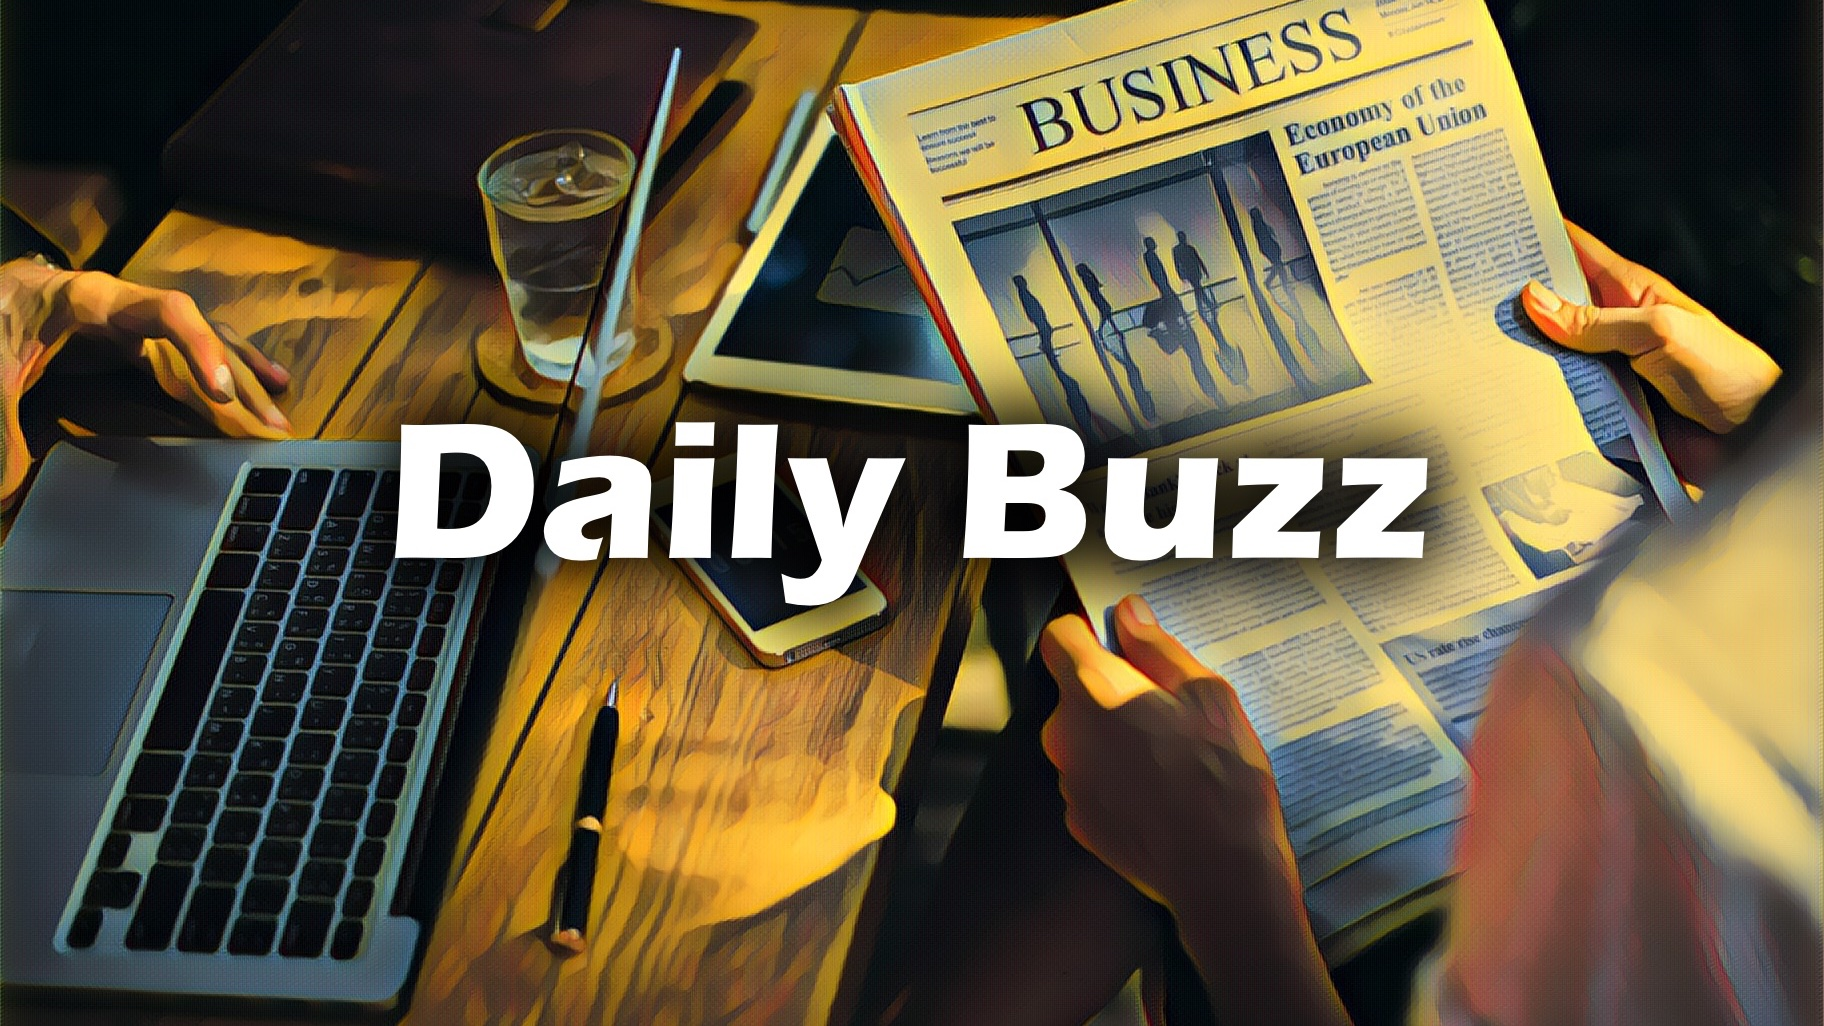 DailyBuzz Wednesday 26 September 2018